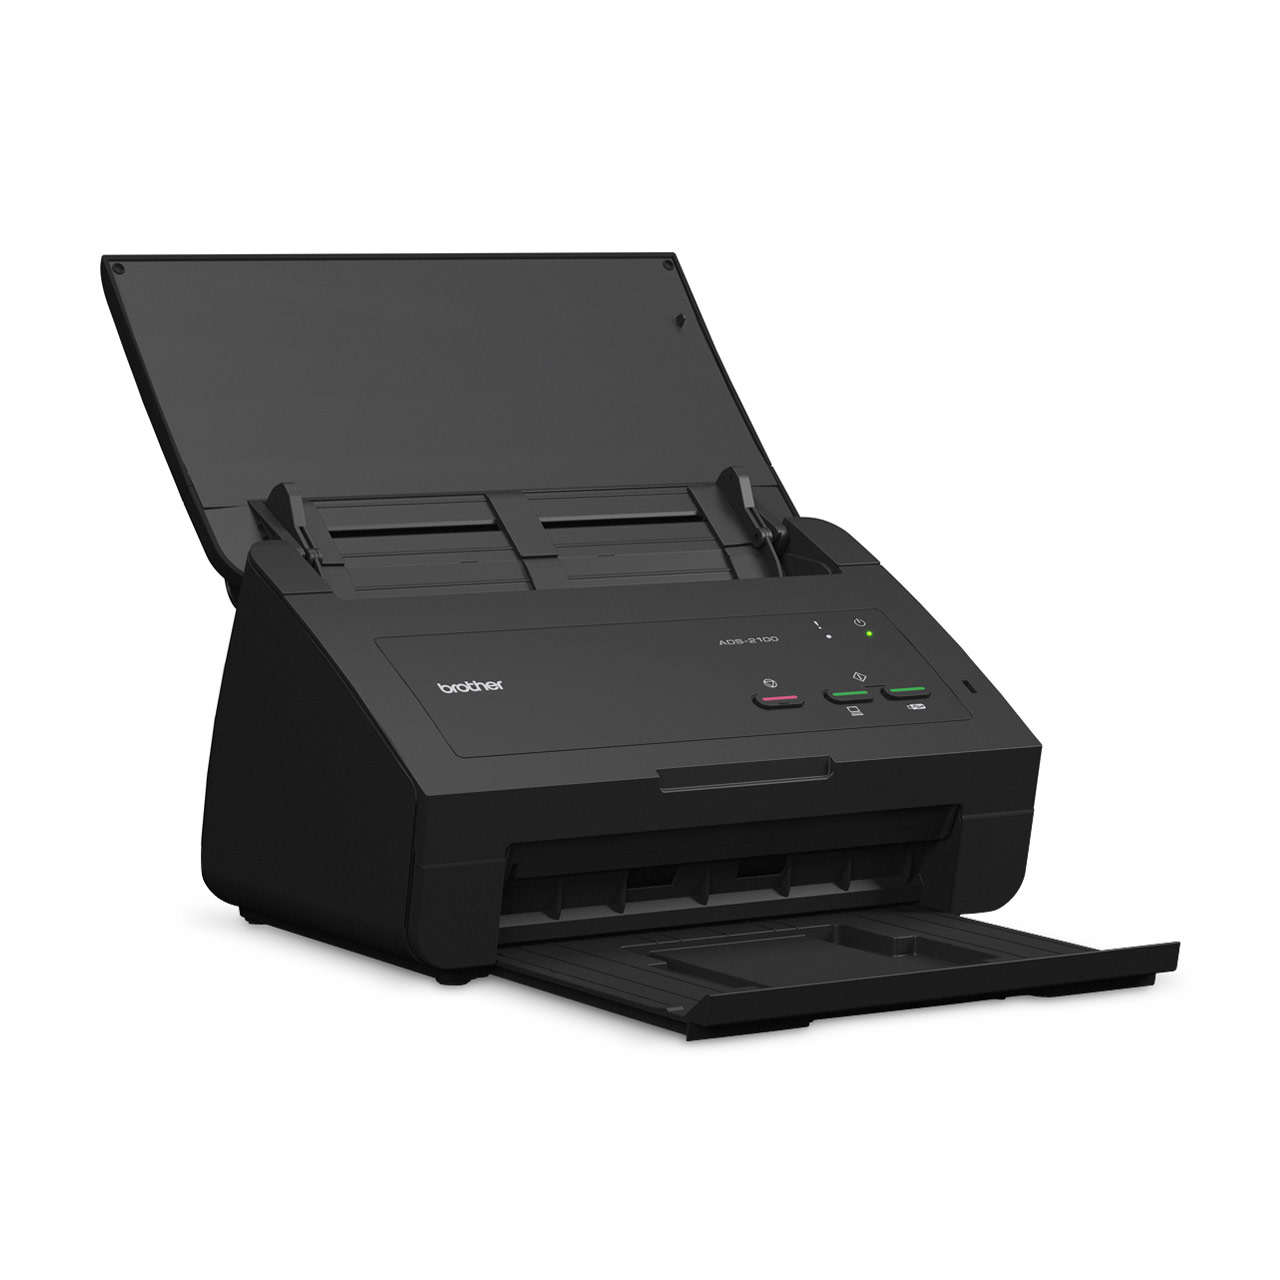 Máy Scan ADS-2100	Desktop Document Scanner